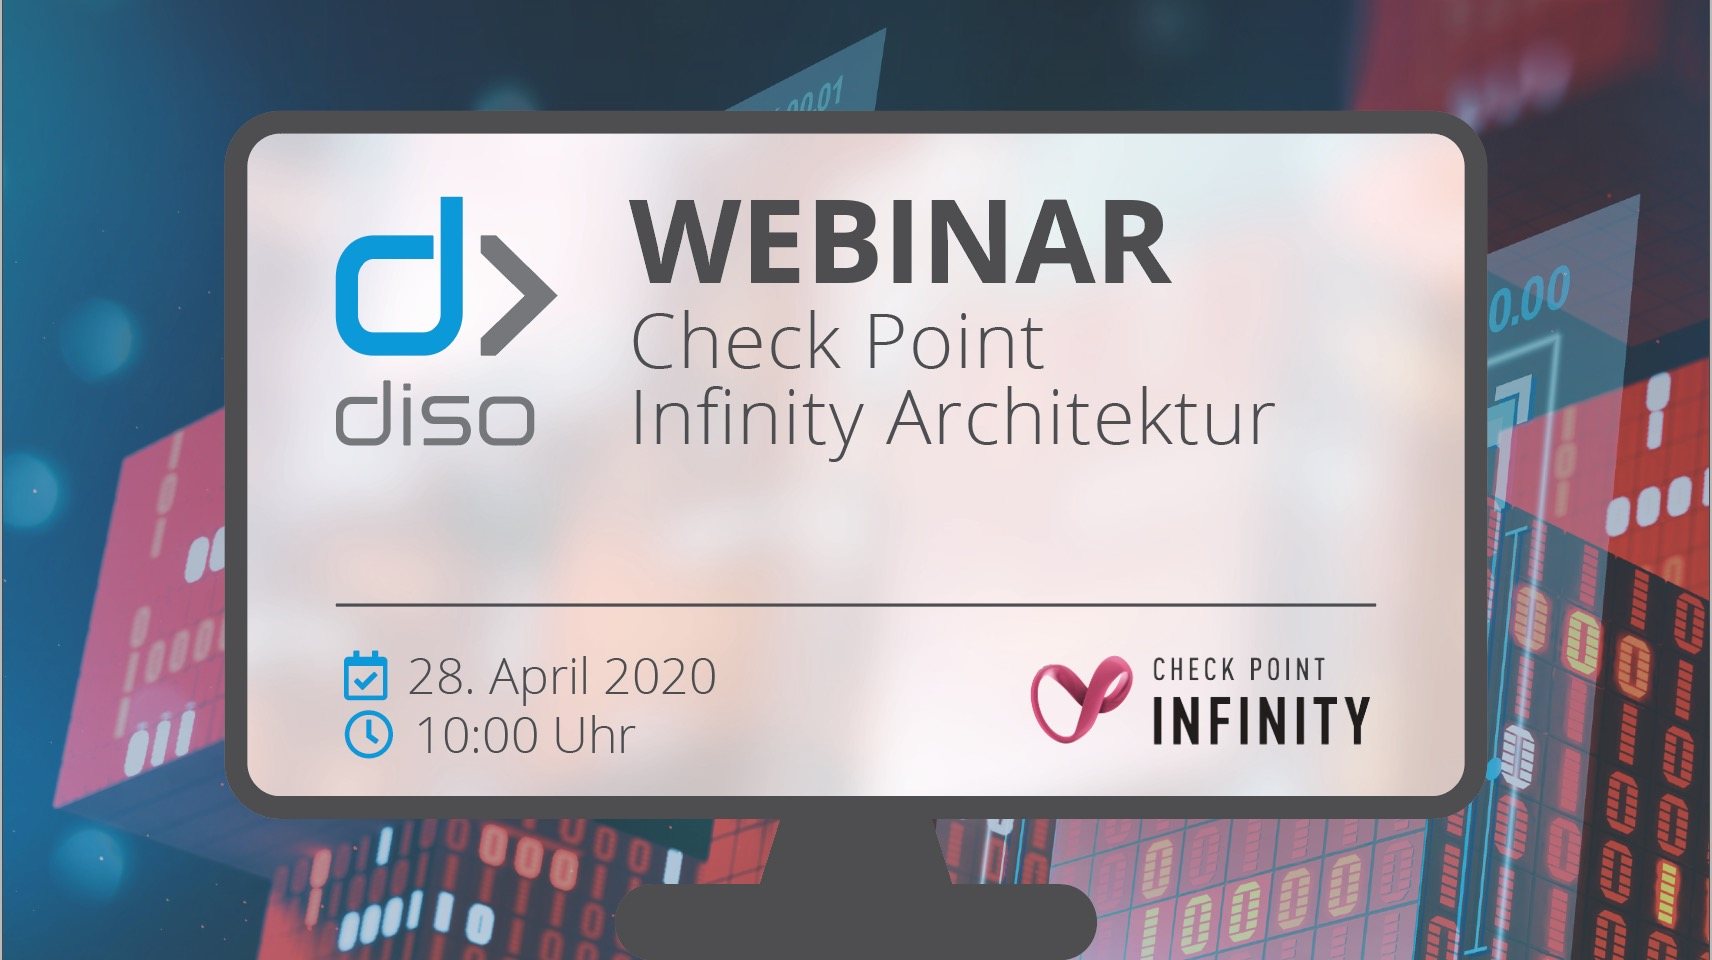 Diso Webinar_Check Point Infinity